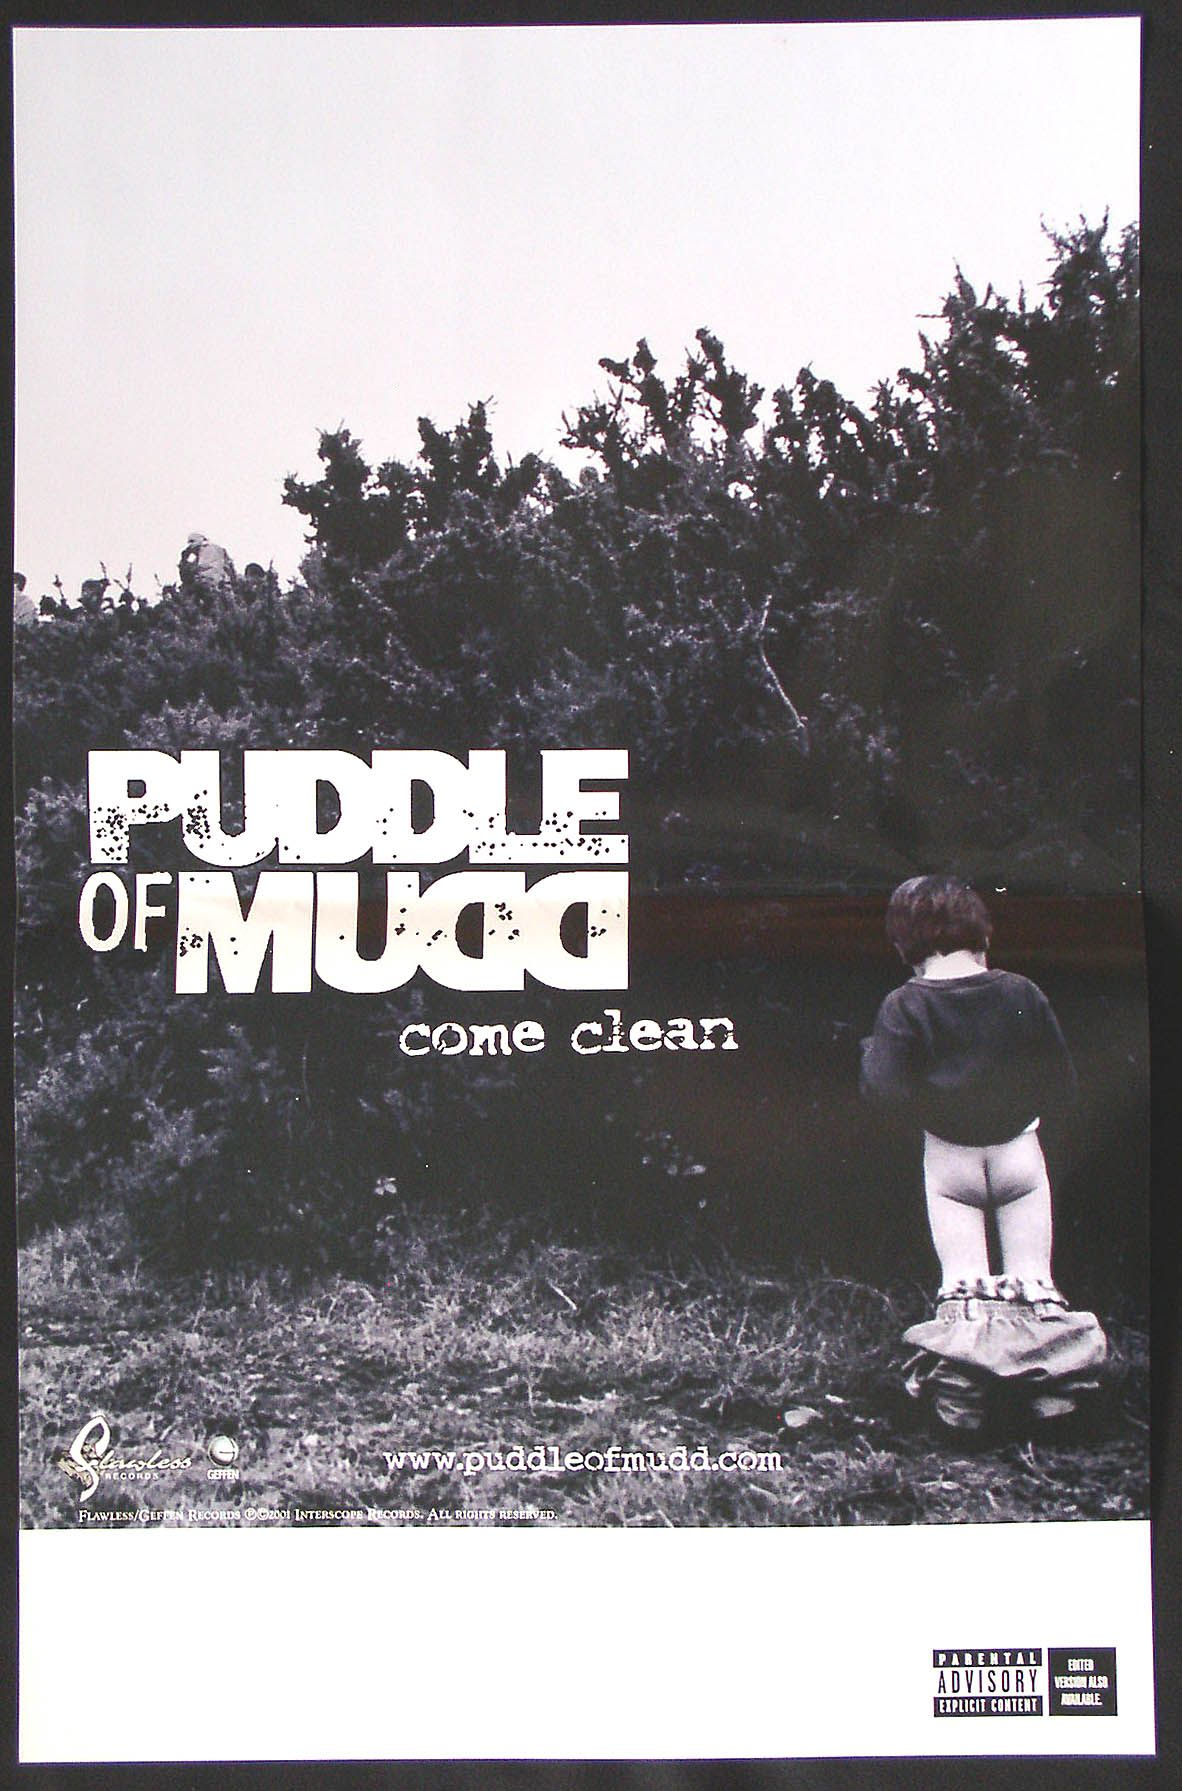 Puddle of Mudd - Come Clean - good album | Rock On-Bands I